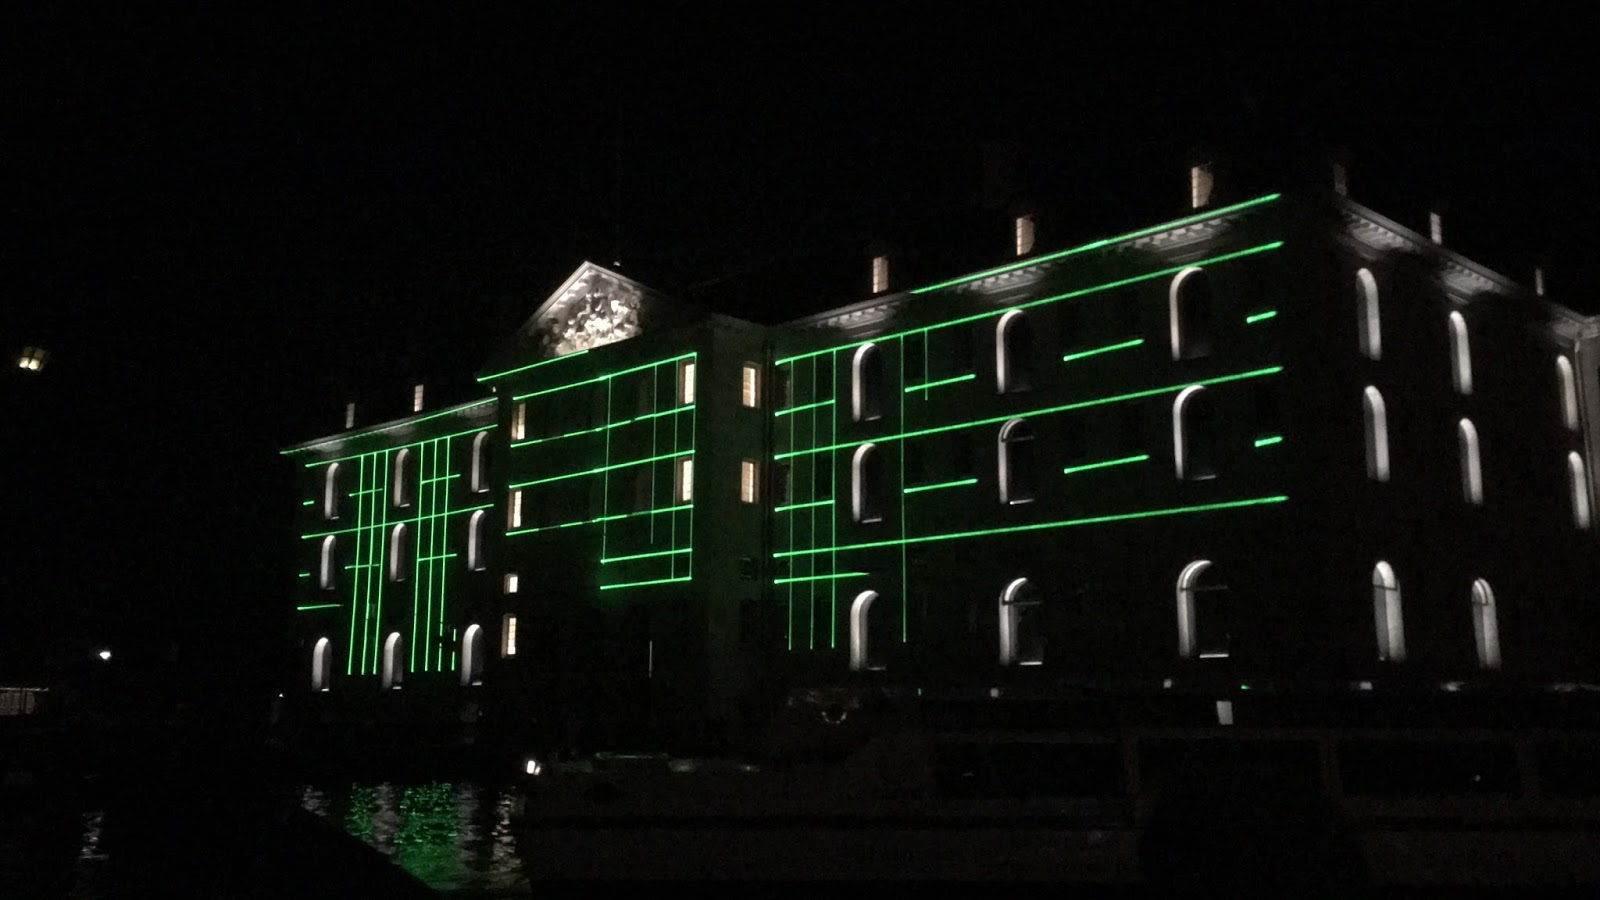 An Amsterdam light festival display as seen from a canal boat.